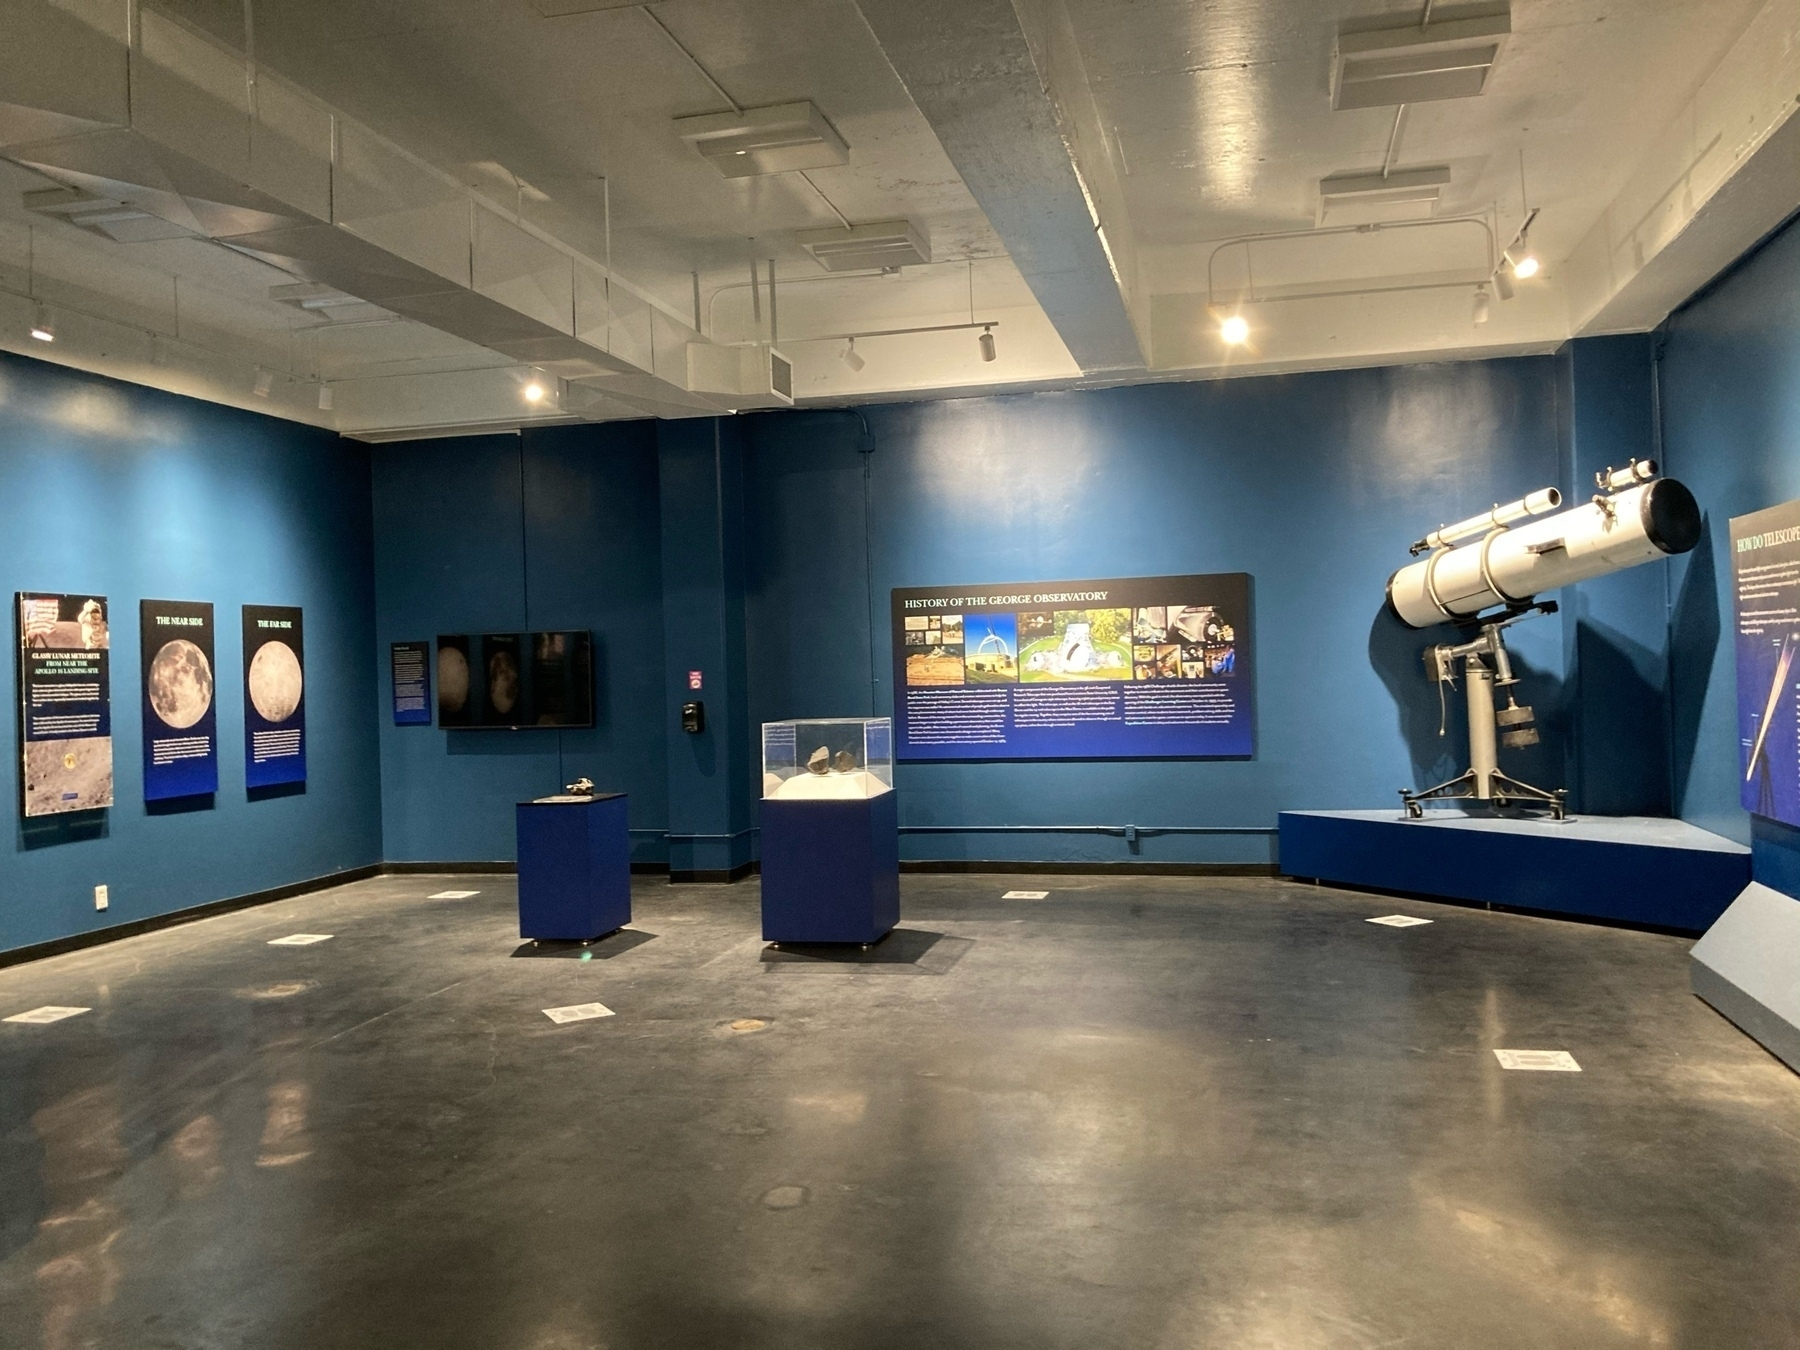 Room with telescopes and items on display